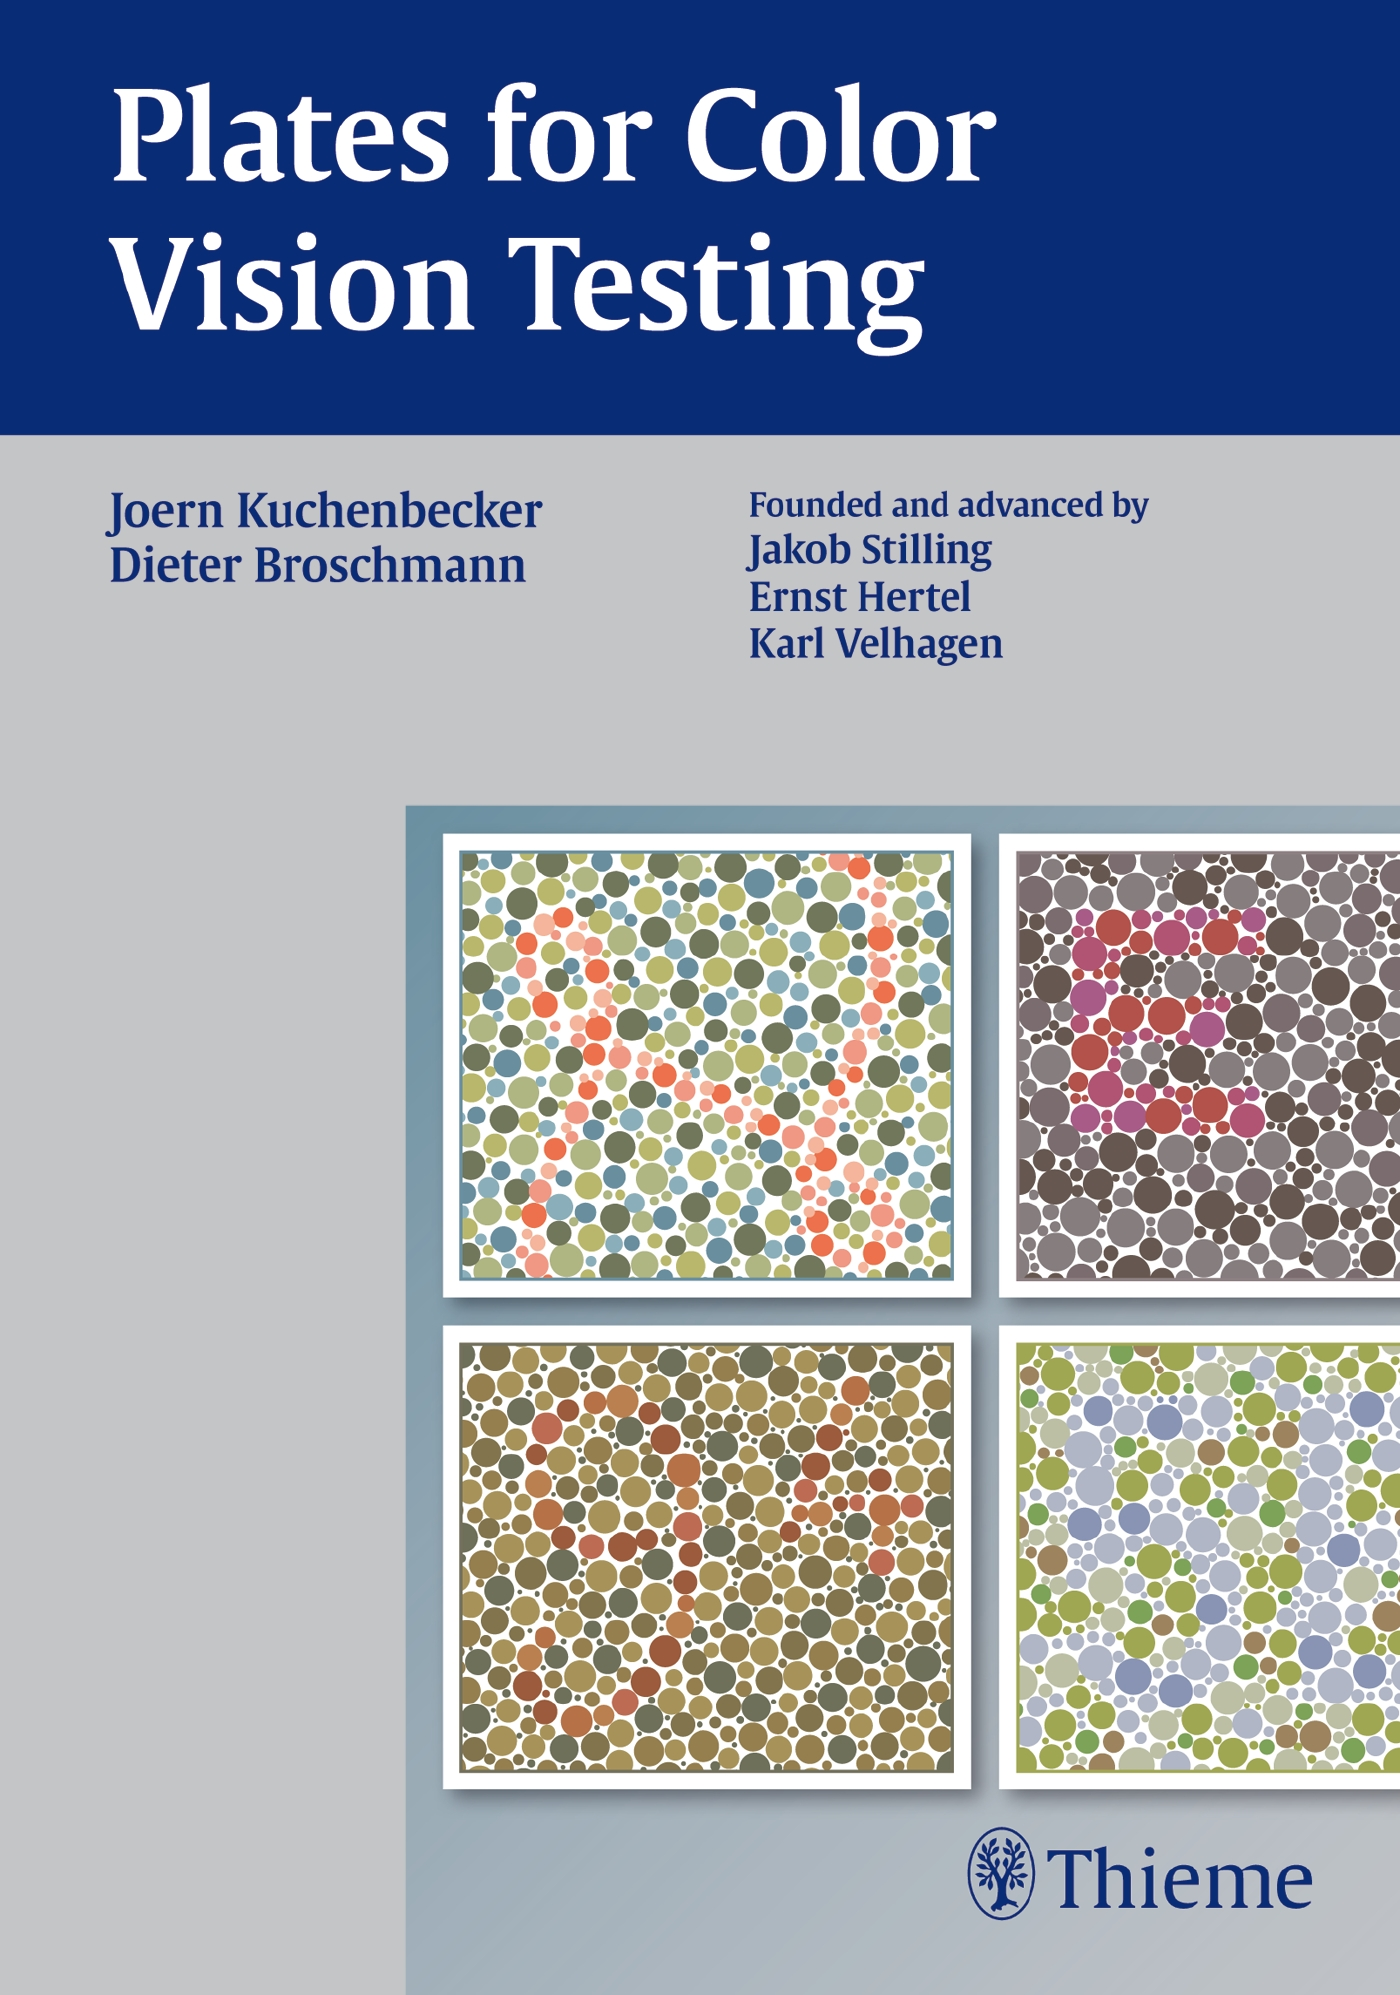 Plates for Color Vision Testing